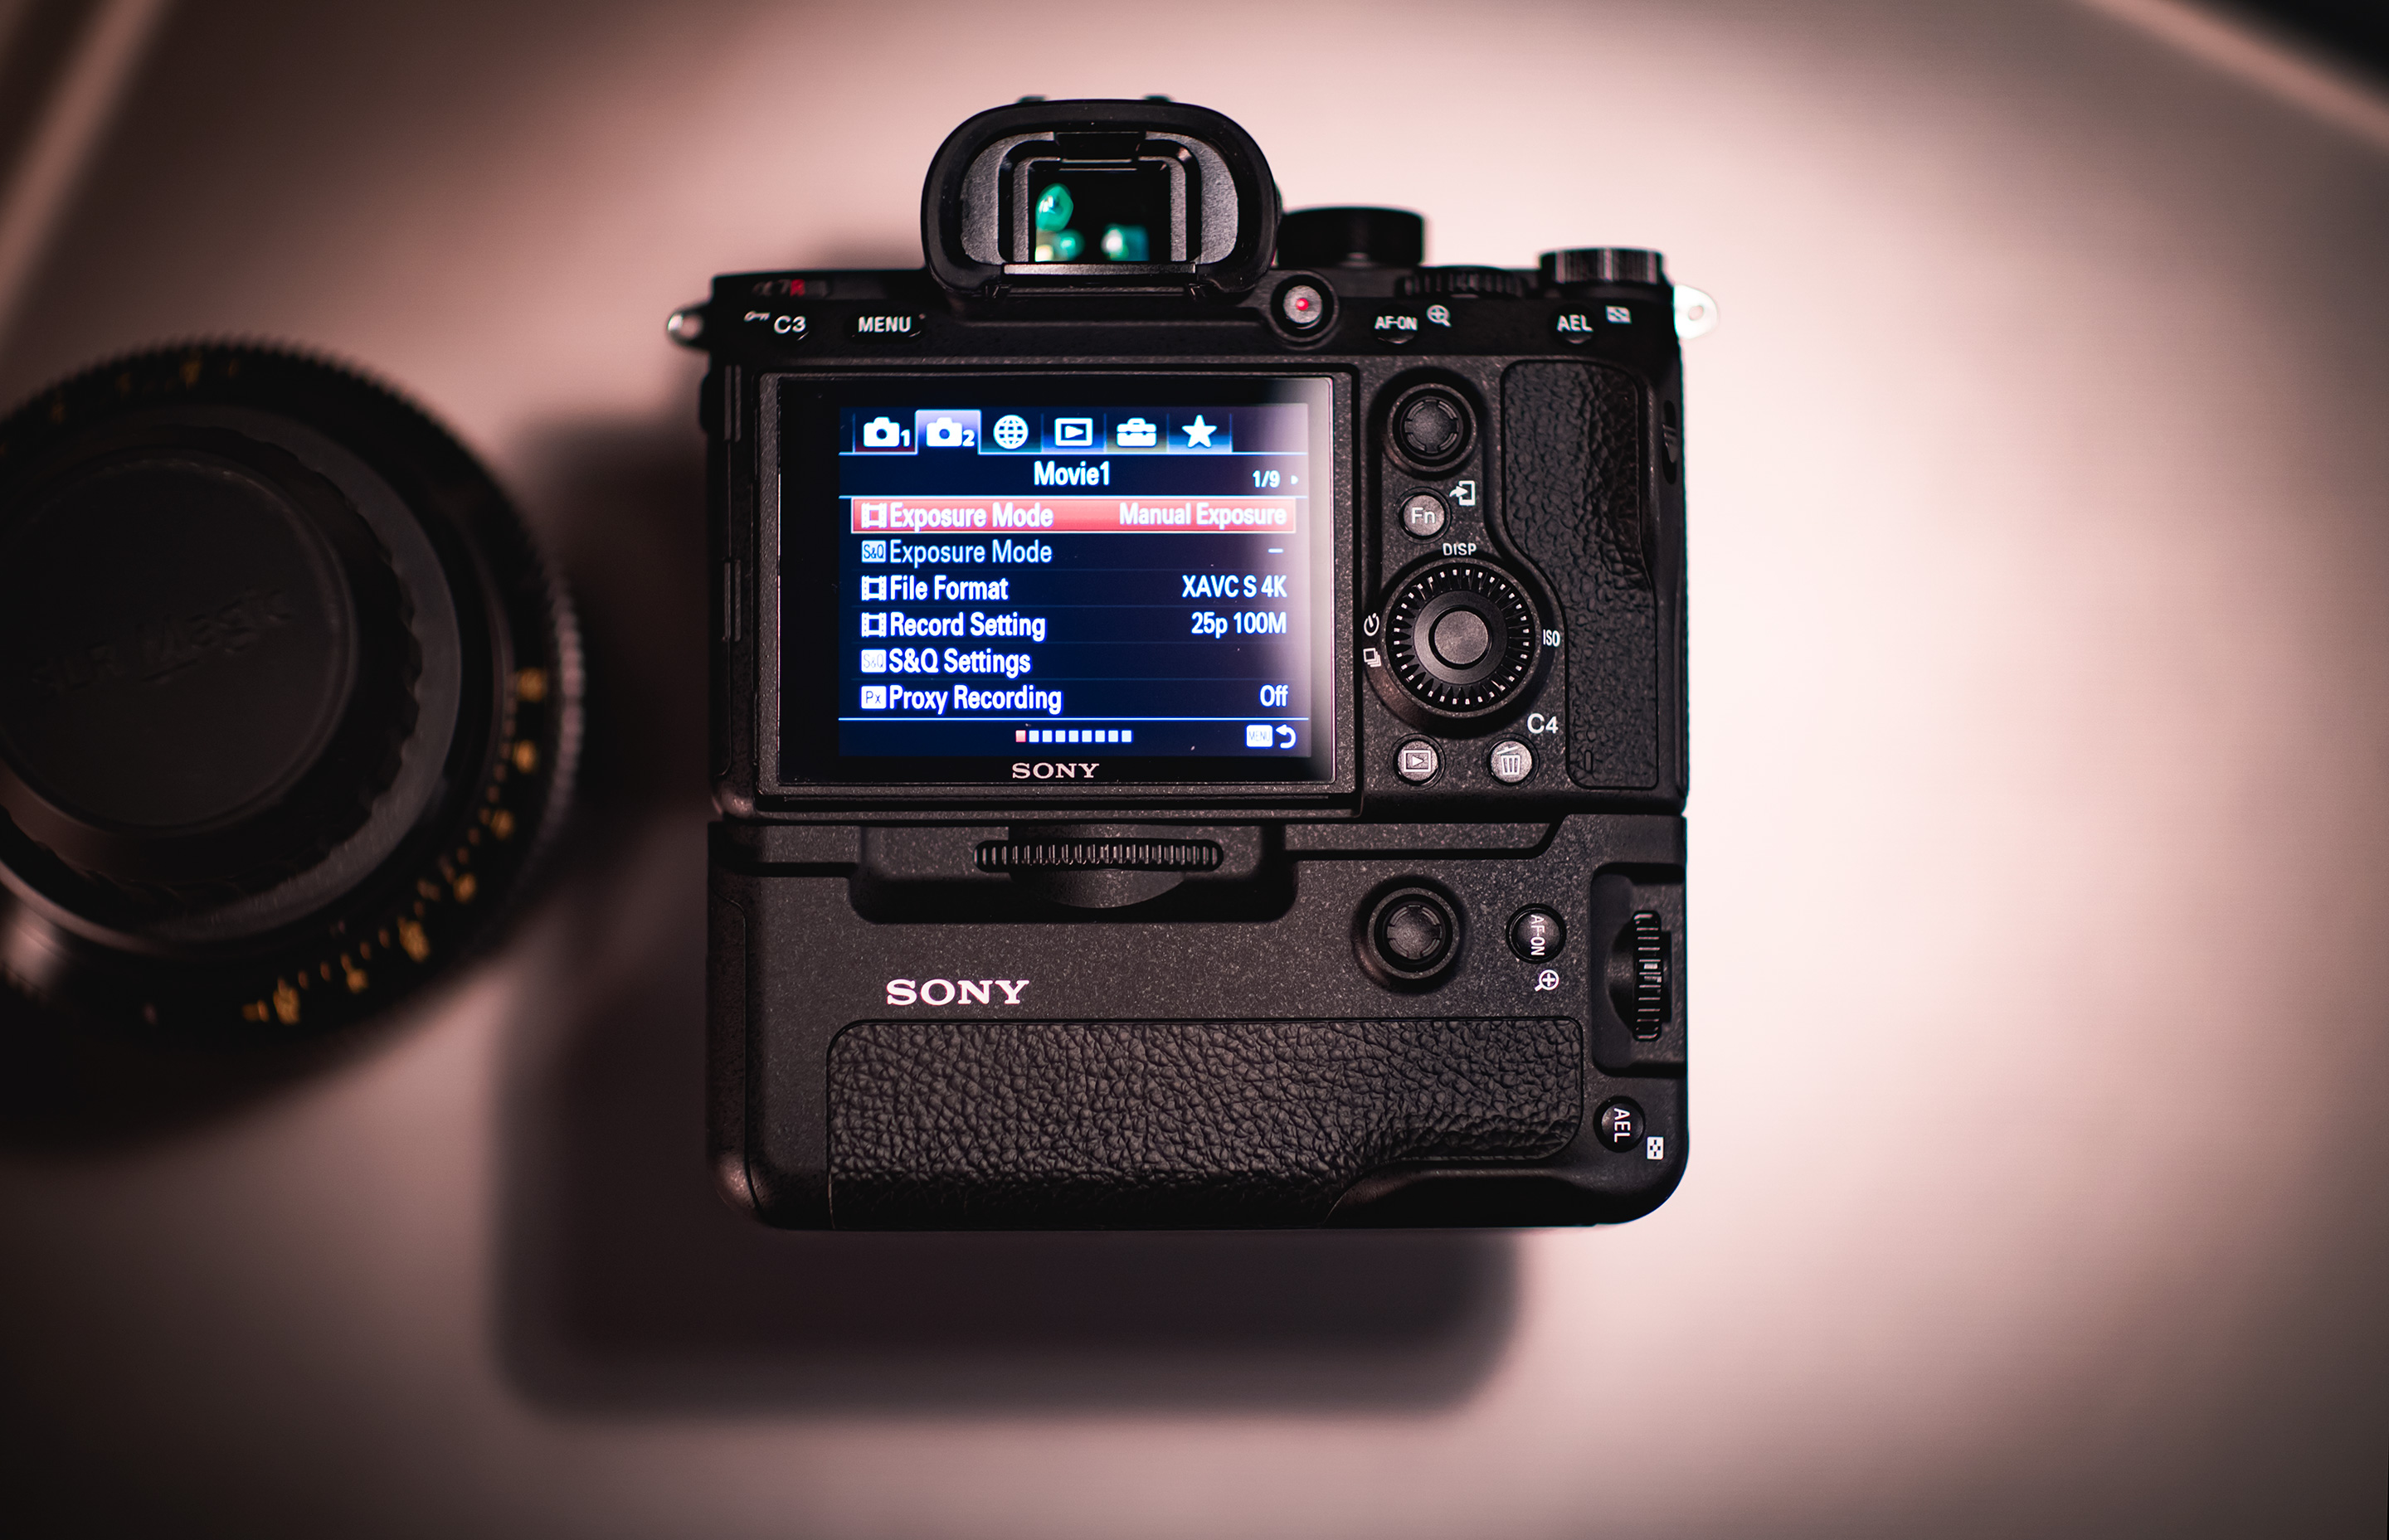 Sony A7R III review - the BBC fixed Sony's colour! - EOSHD